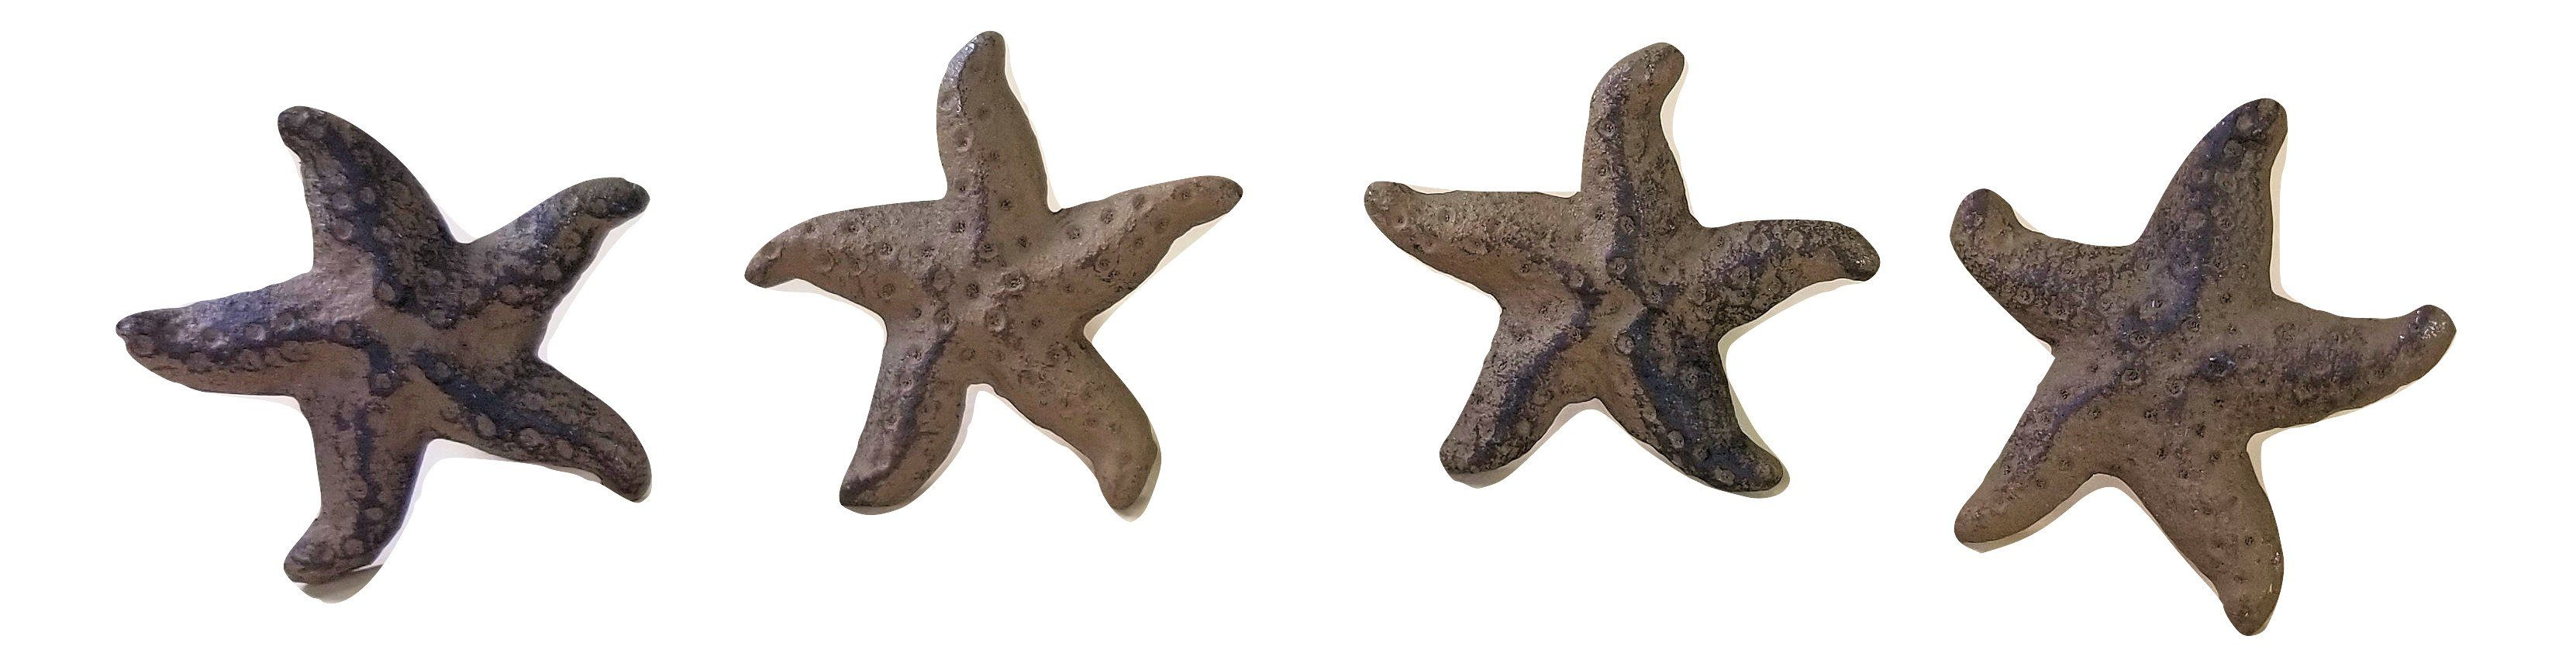 4 Cast Iron Starfish Knobs for Drawers or Cabinet Doors